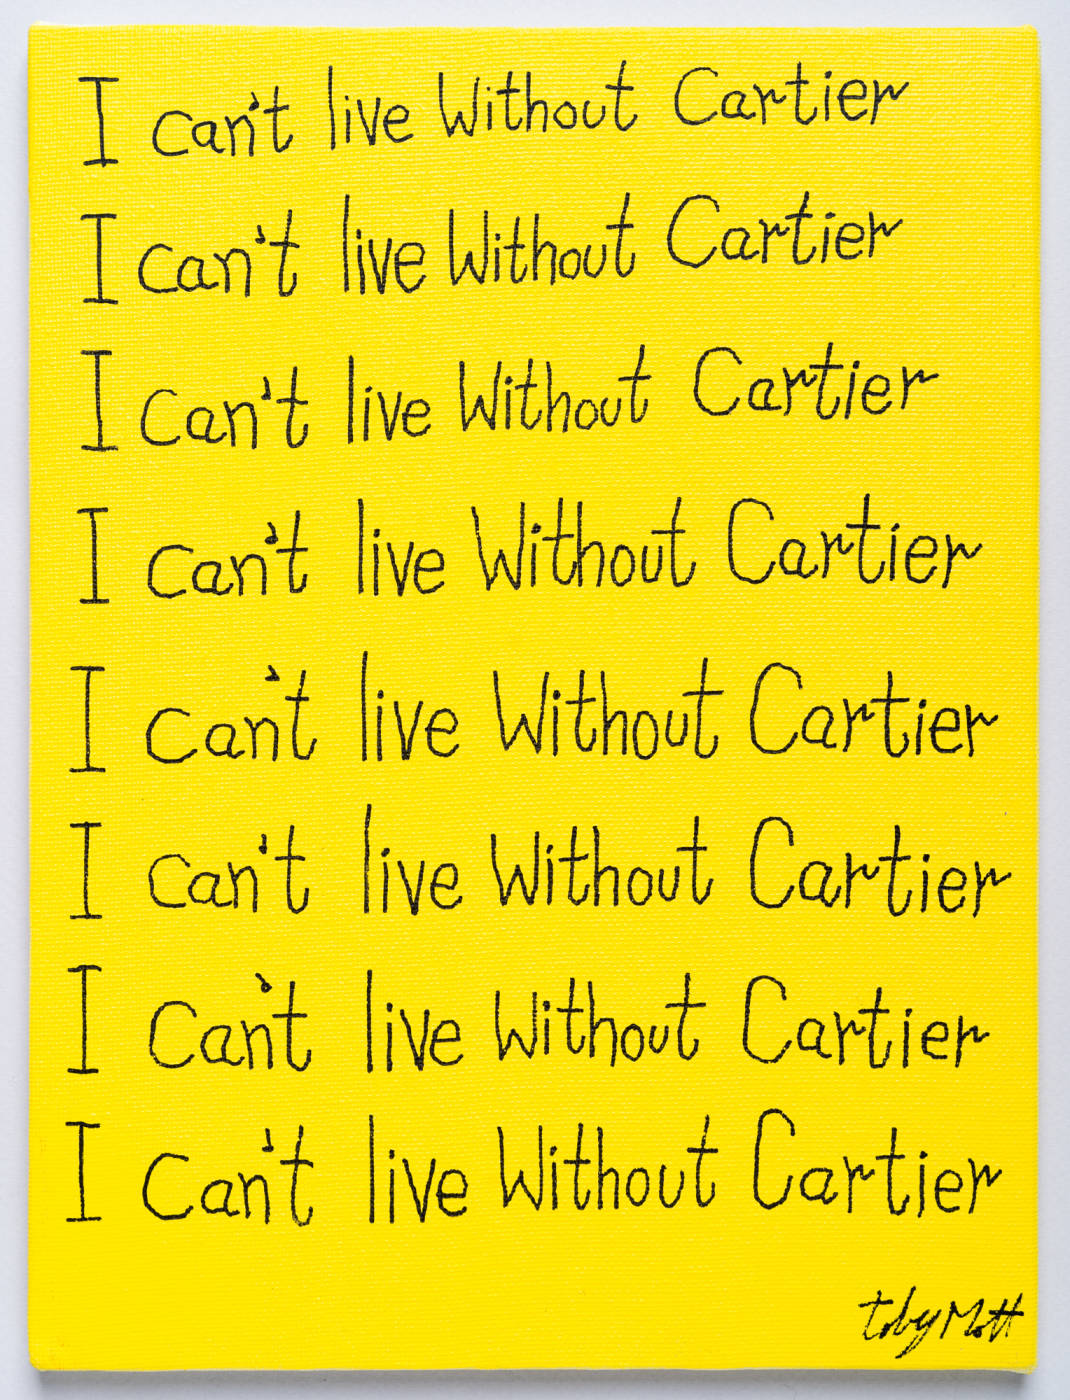 I can't live without Cartier